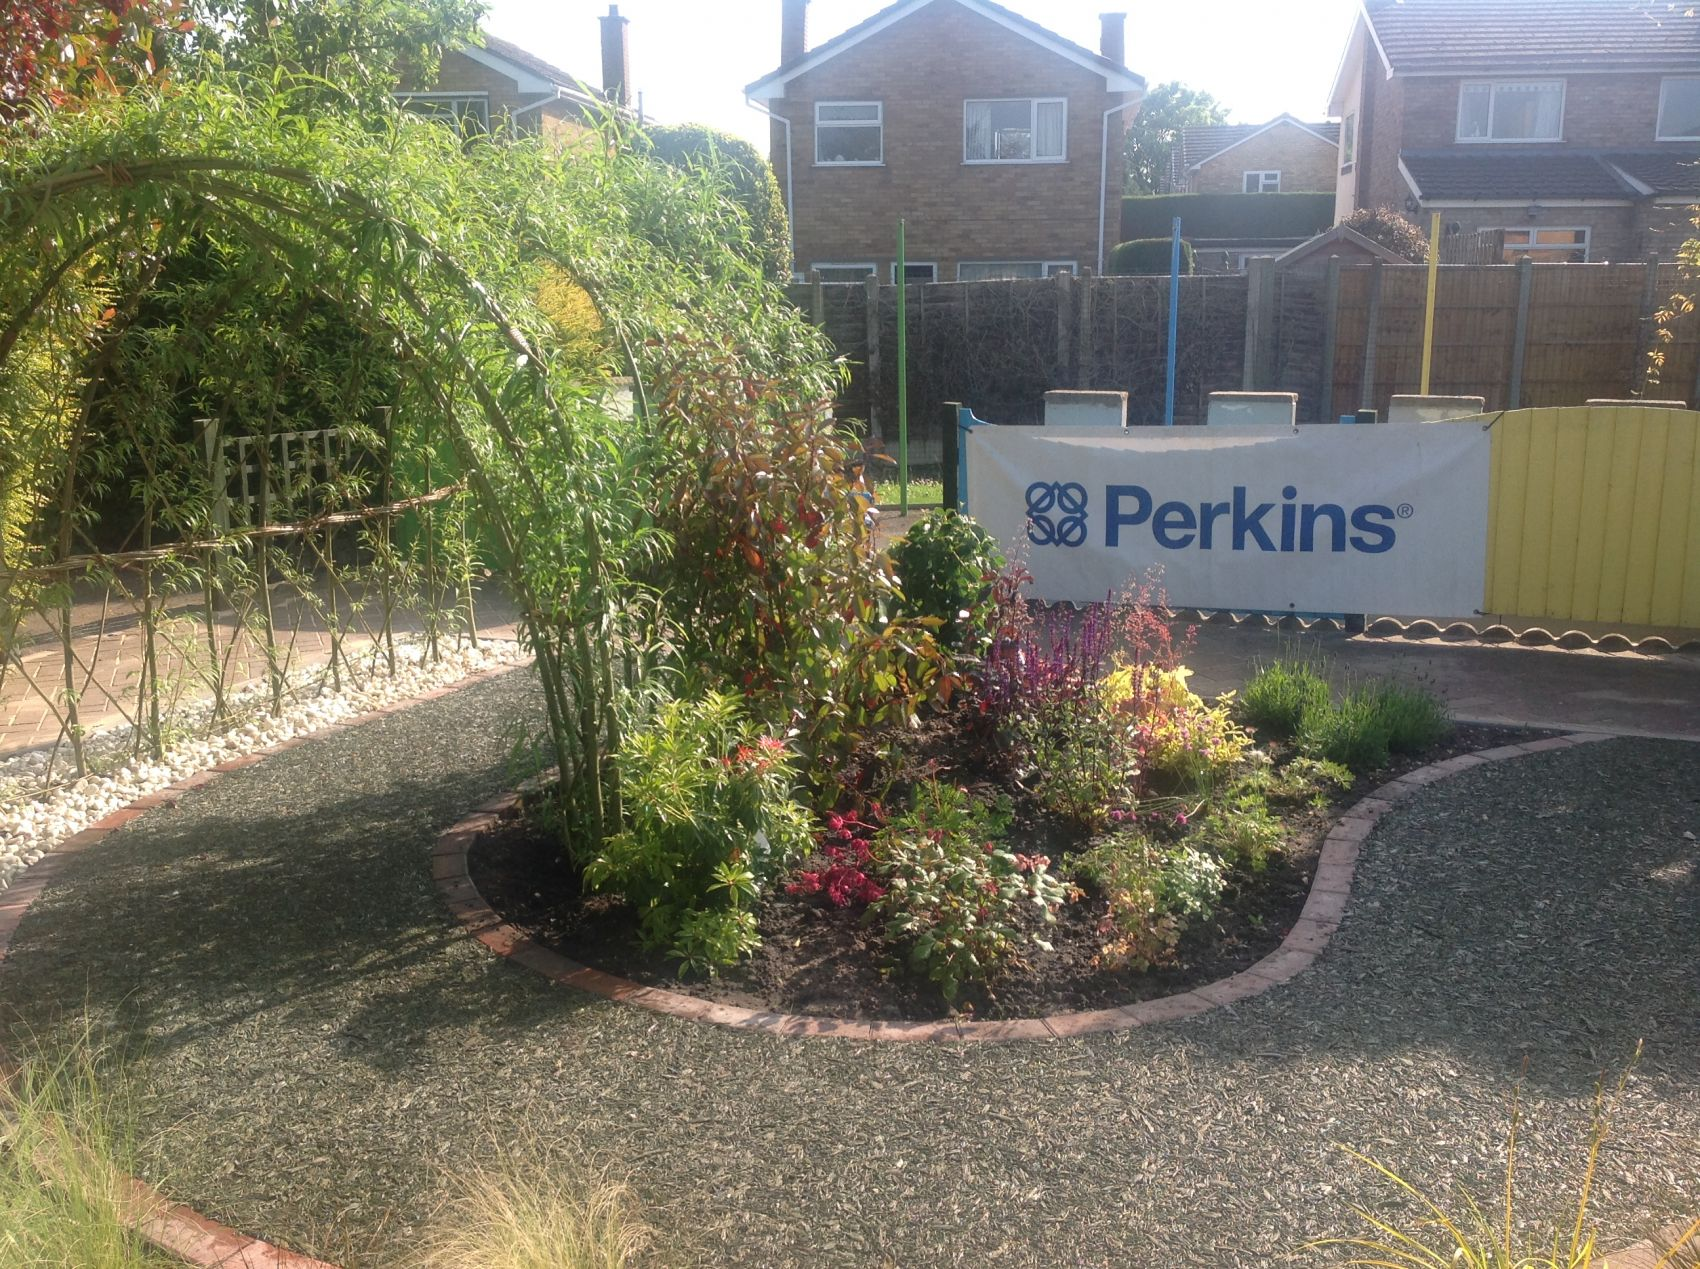 Sensory Garden designed by Perkins